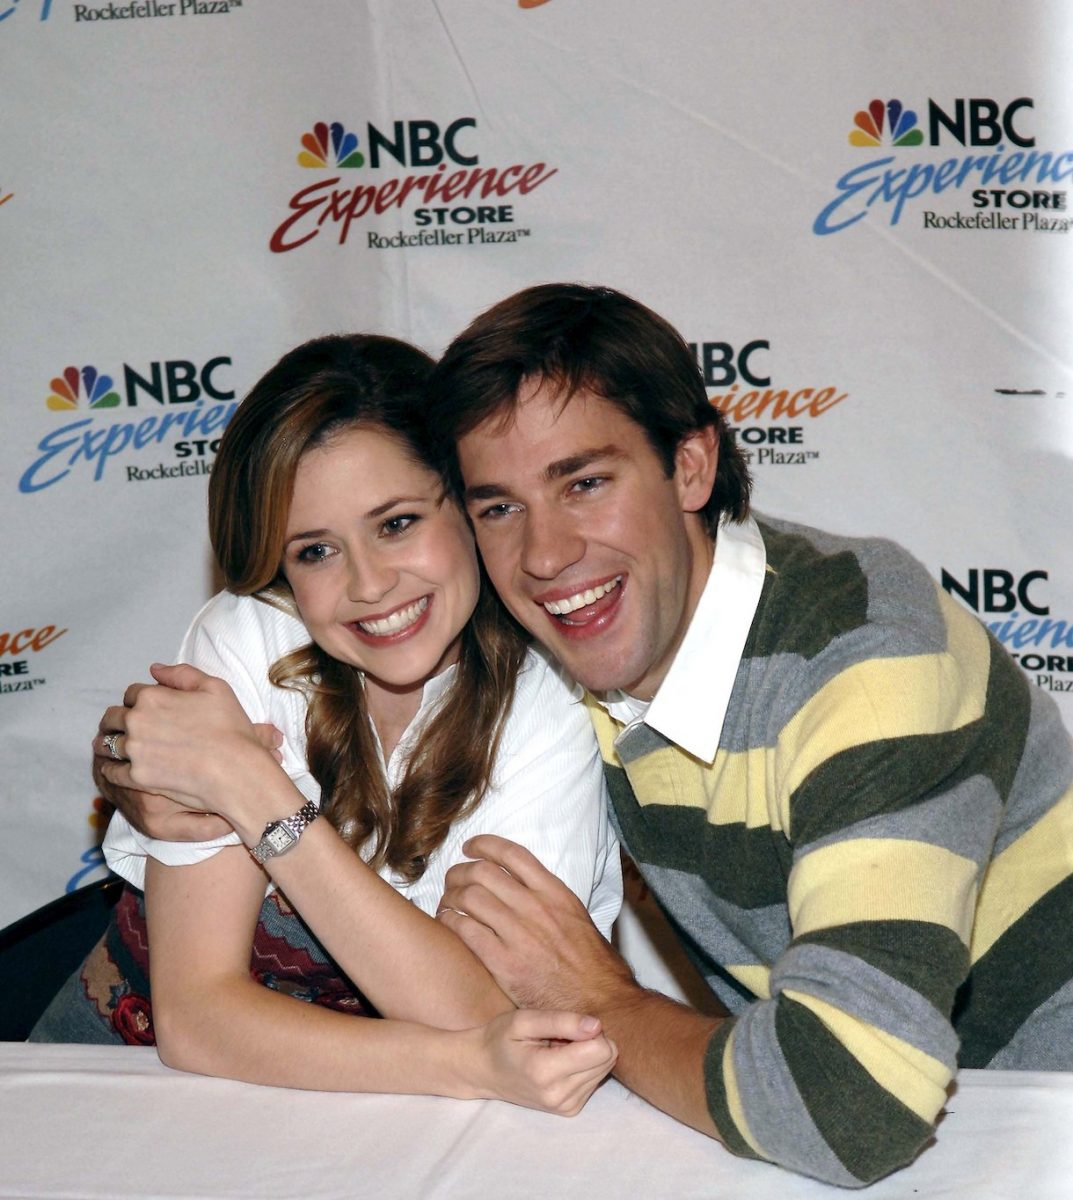 """Actors John Krasinski (R) and Jenna Fischer pose at the NBC Experience store at """"The Office"""" DVD release signing on September 21, 2006 in New York City"""